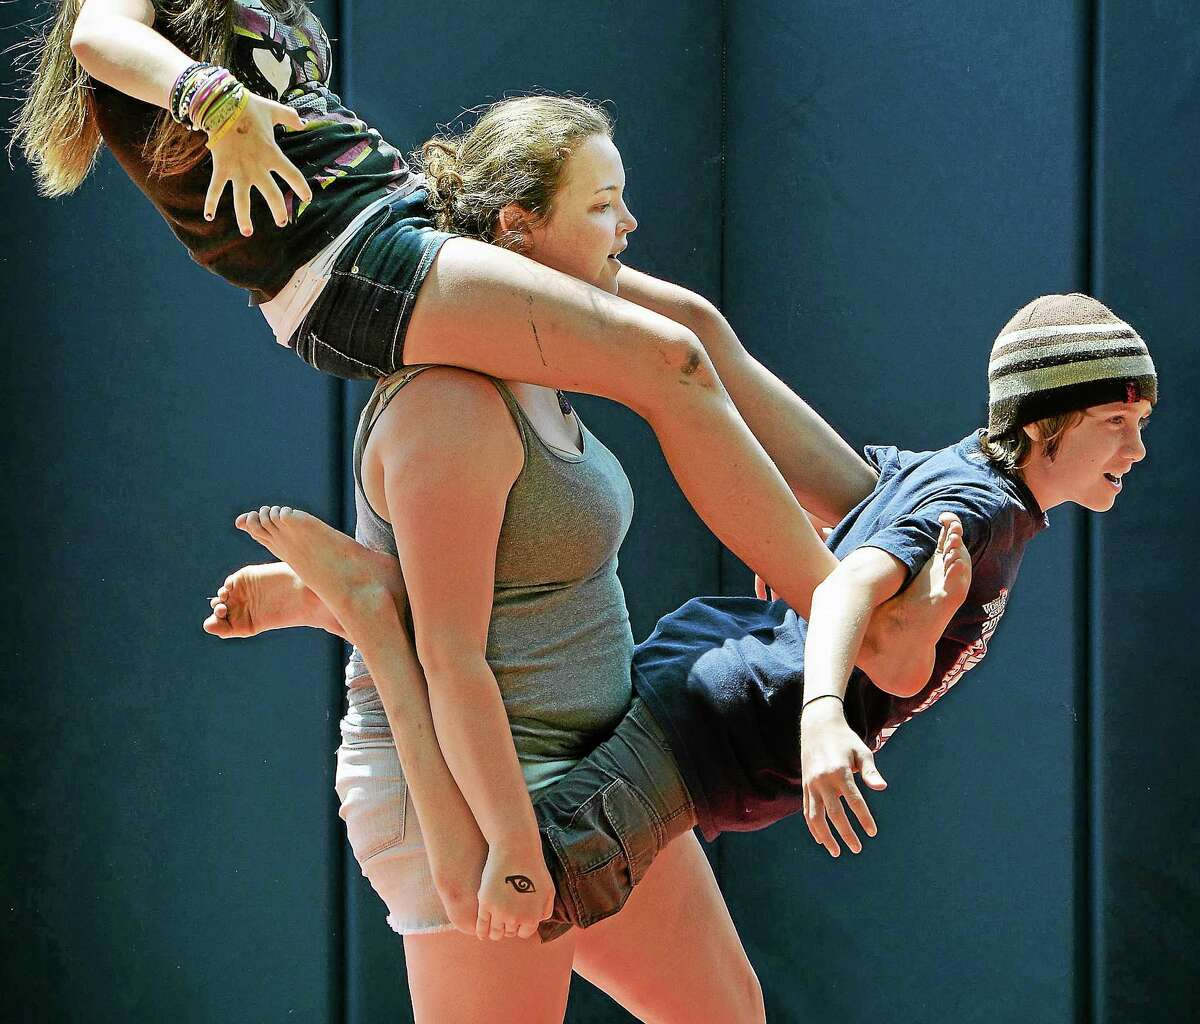 Campers and counselors rehearse Friday afternoon for Oddfellows Playhouse Youth Theater's 26th annual Children's Circus of Middletown: Circus Saves the Day! The performance is Aug. 1 at 5 p.m. at Macdonough Elementary School in Middletown.